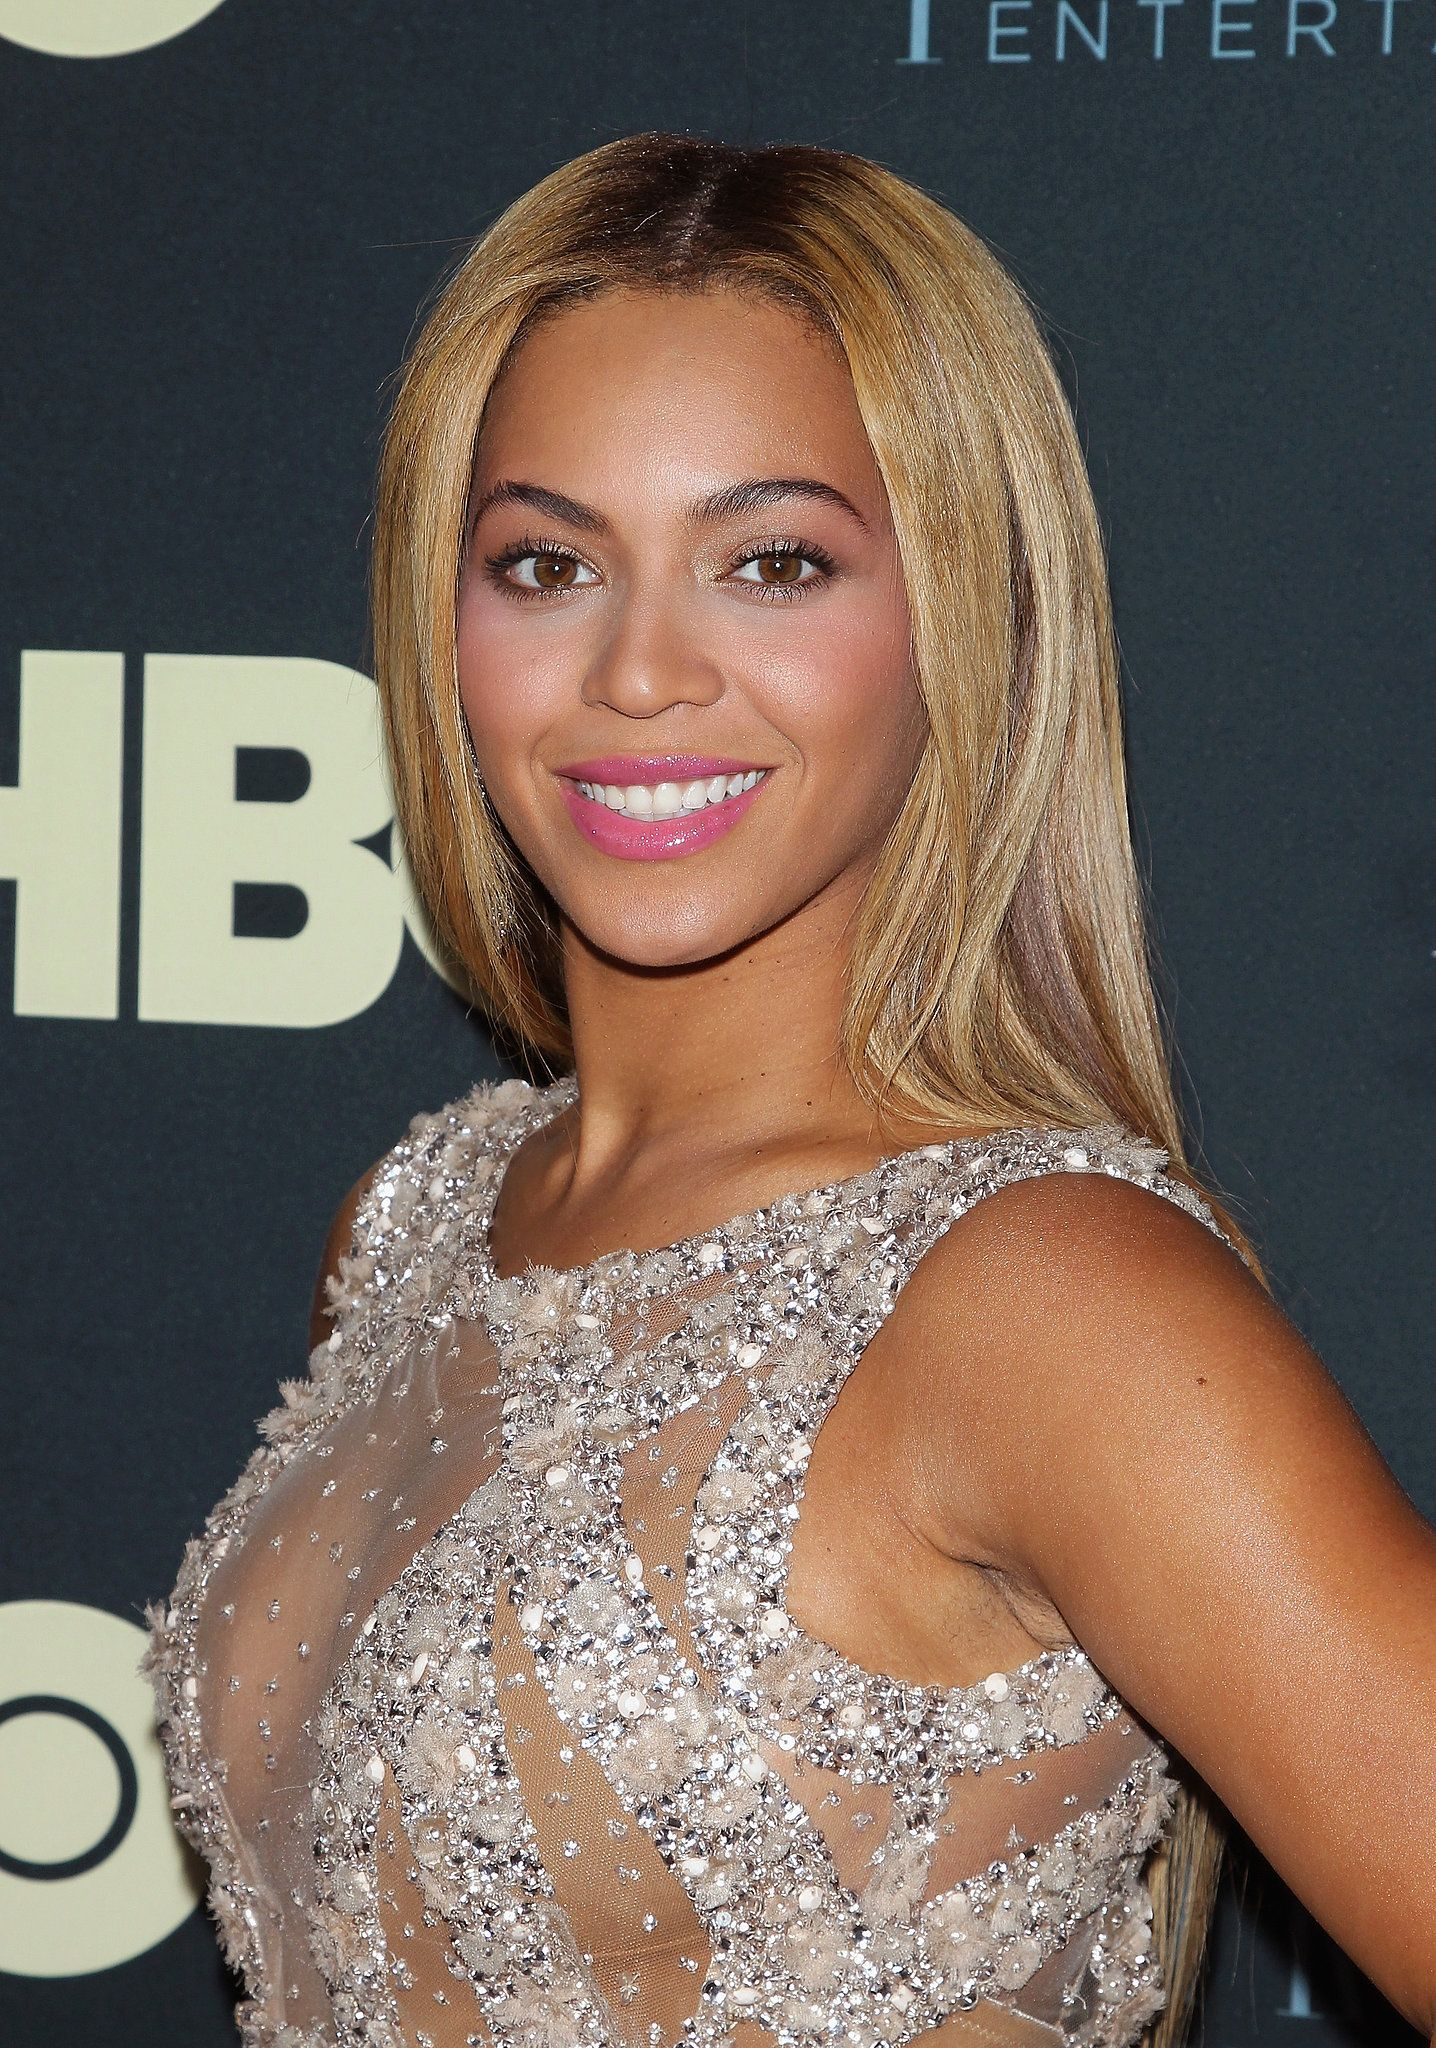 beyoncé's hair ran the (beauty) world in 2013 | celebs